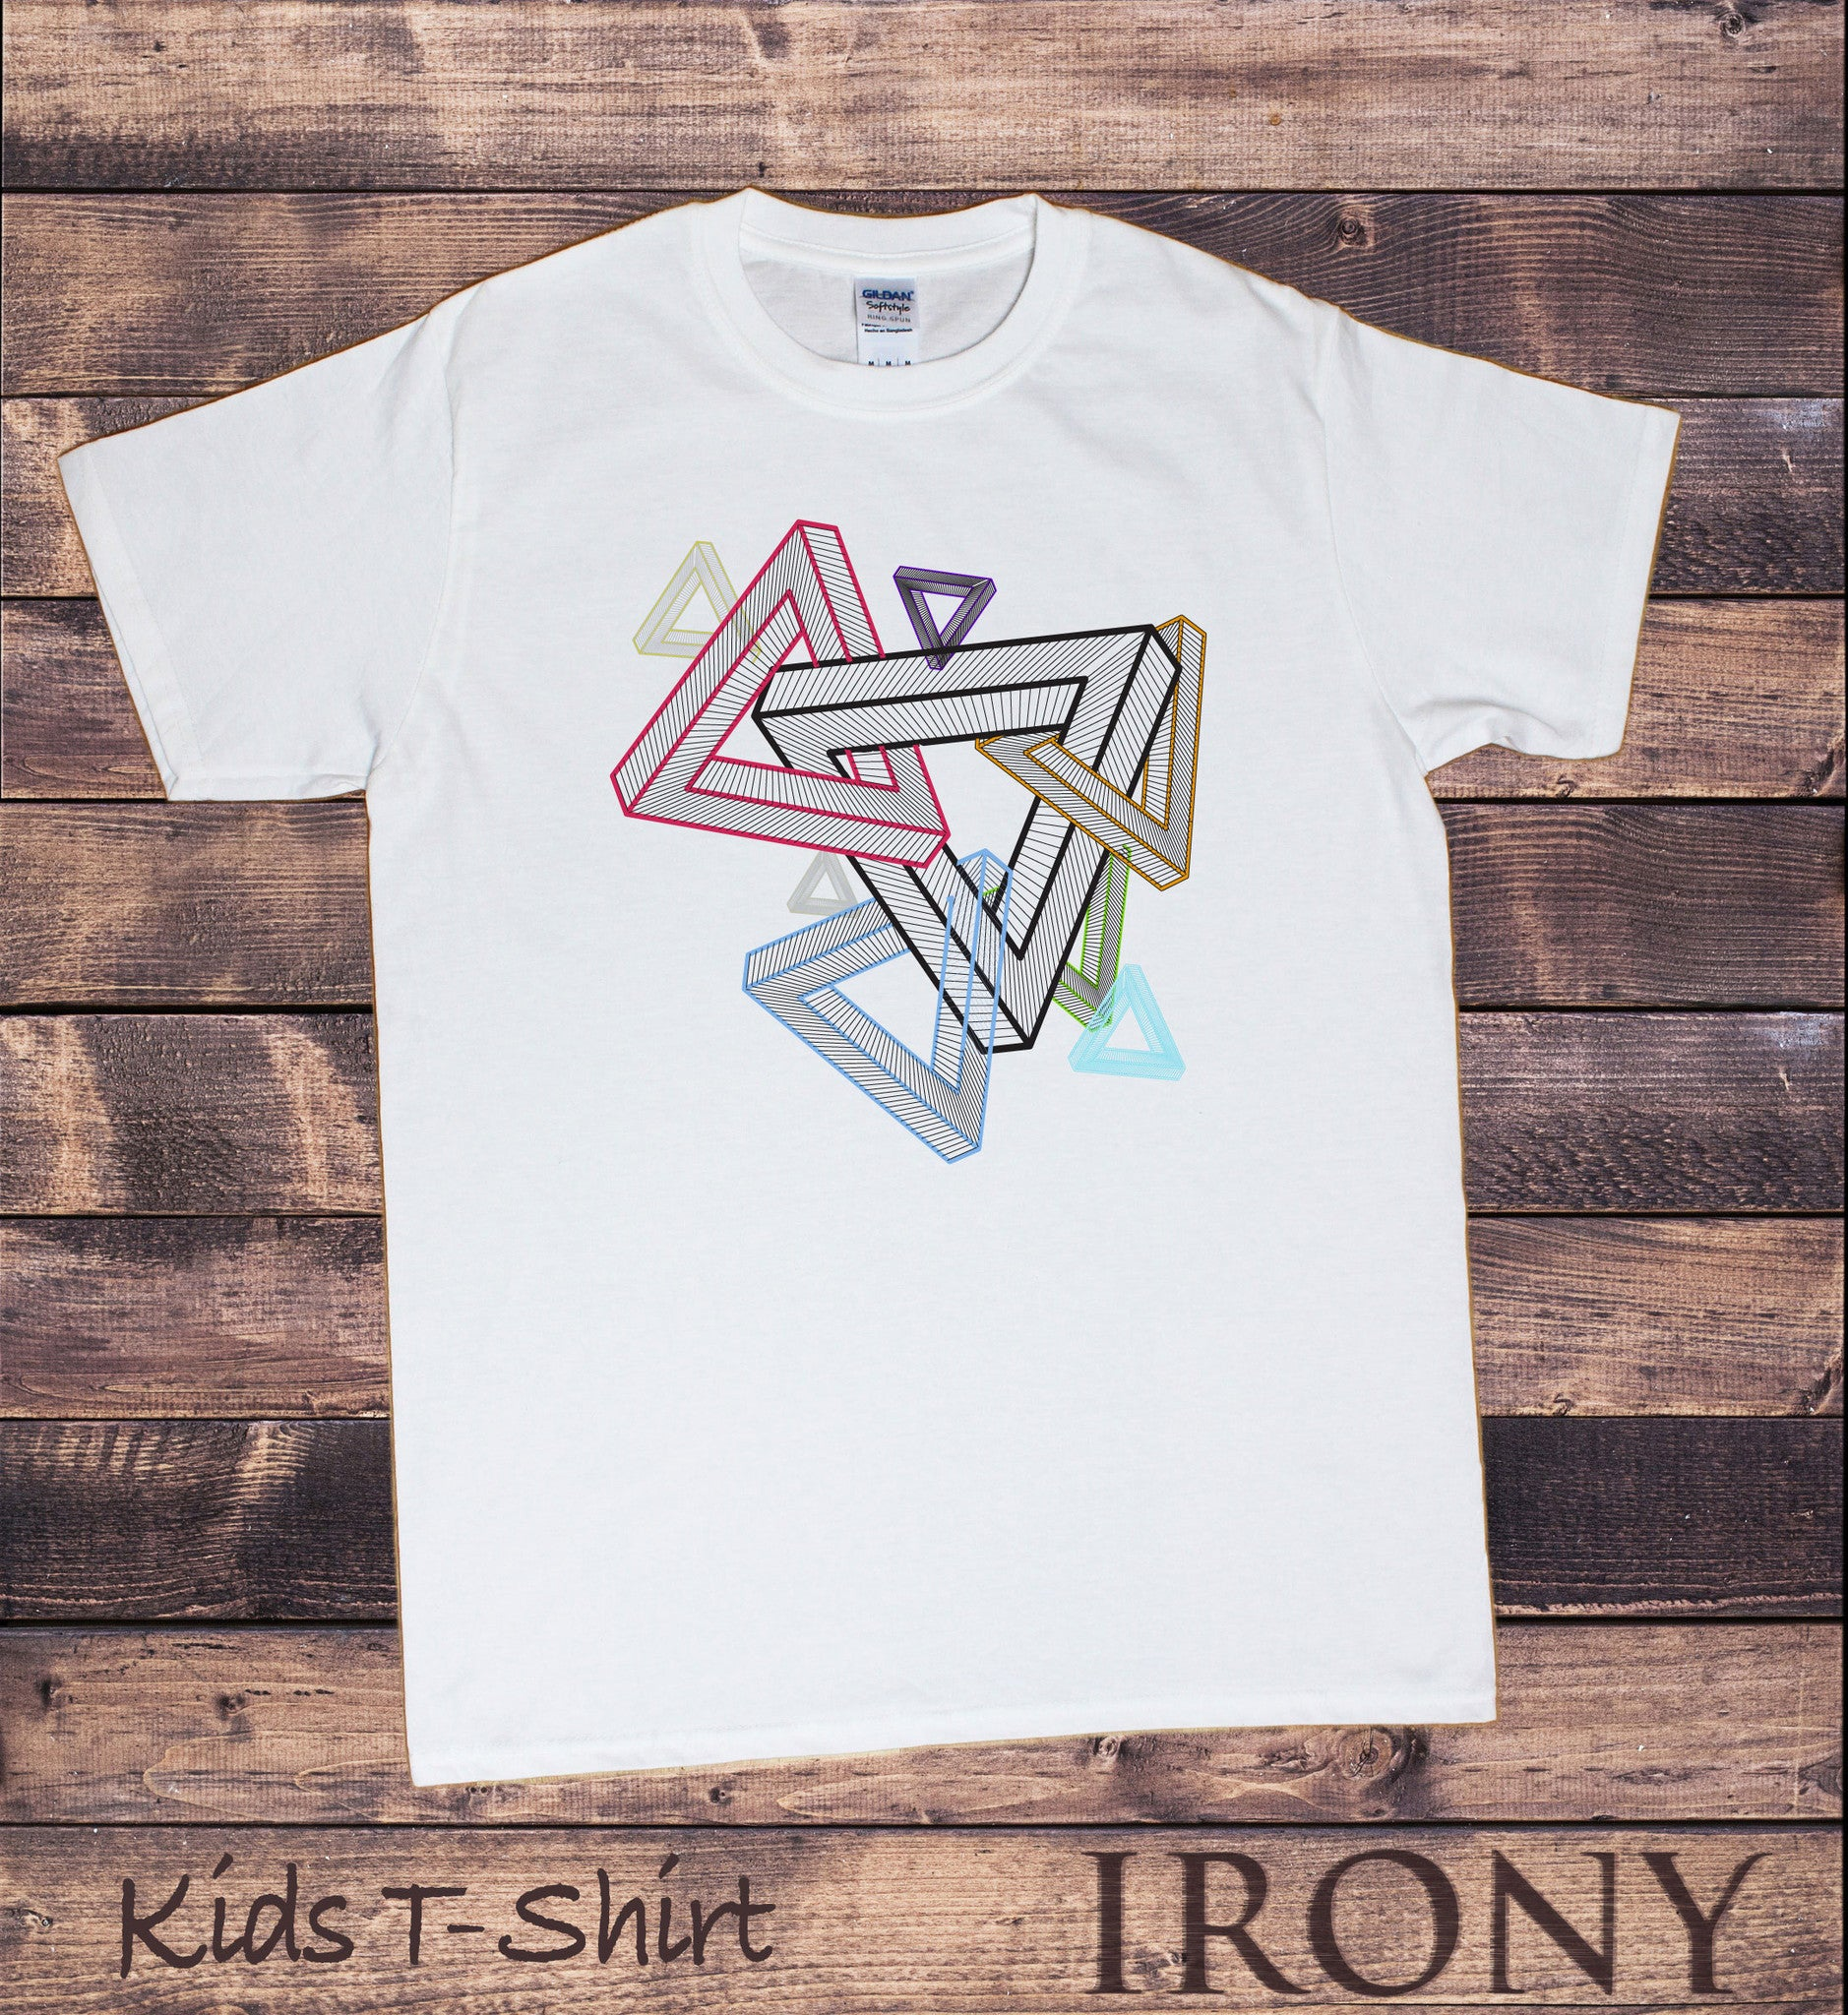 79b49564 Irony T-shirt Kids White T-Shirt Geometric Abstract Design Tee KDS580